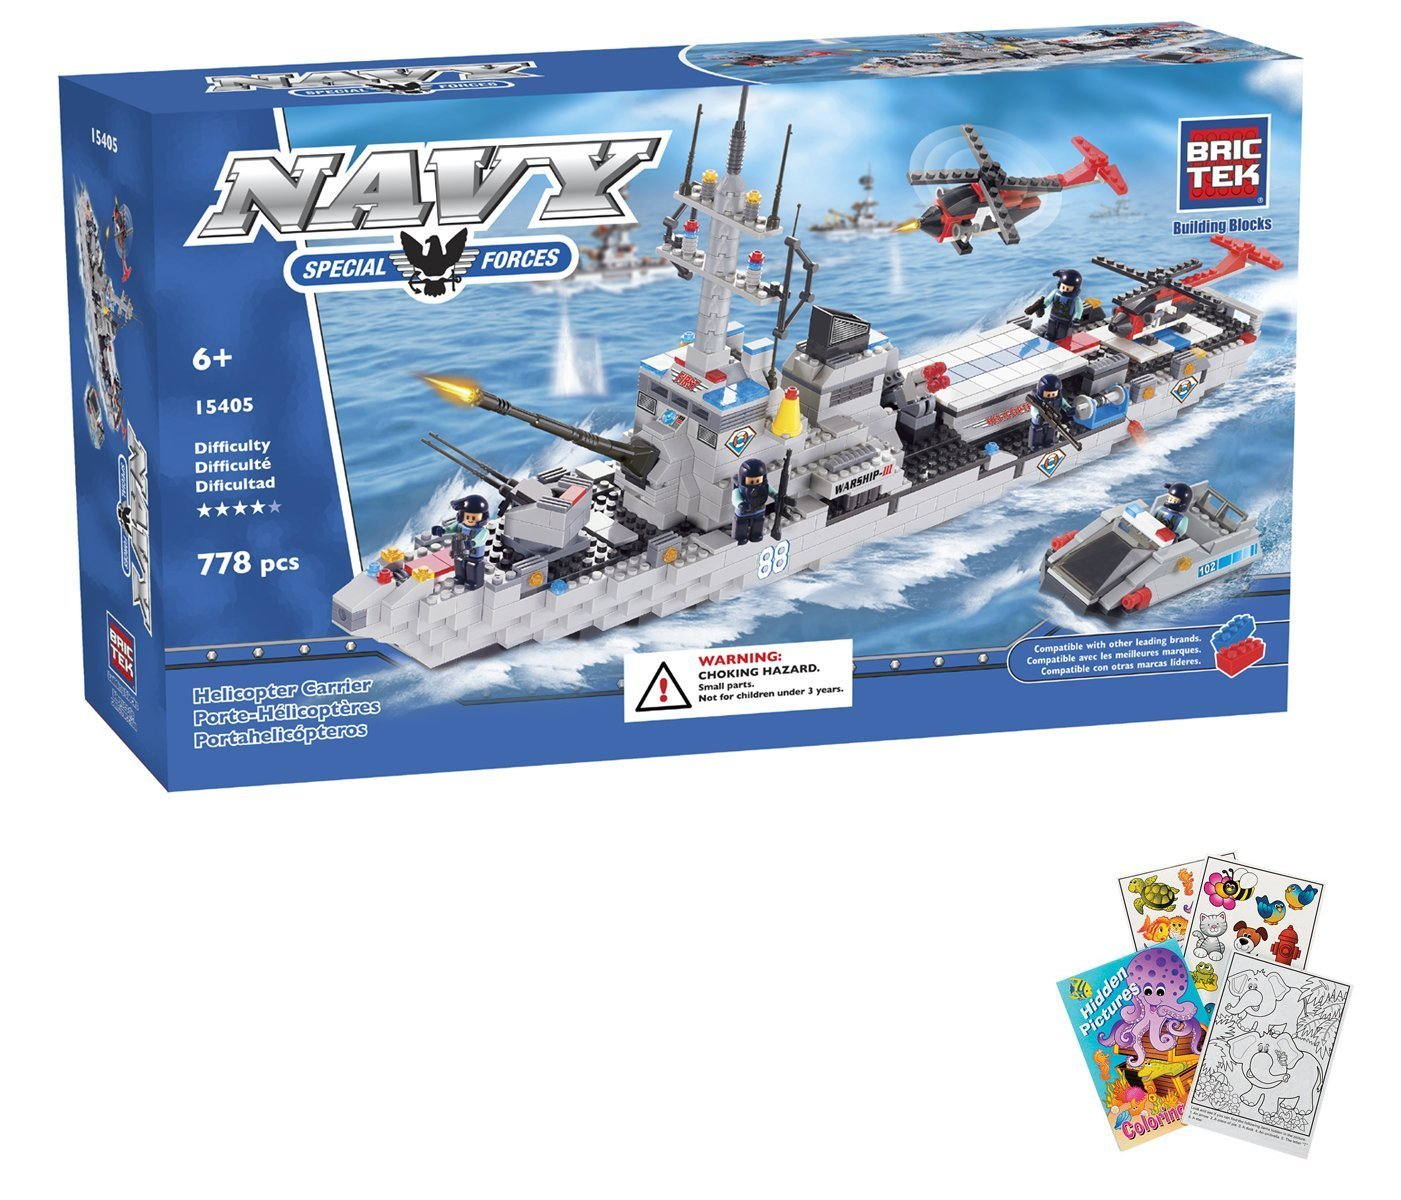 Amazon.com: BRICTEK Helicopter Carrier War Ship 778 pcs Building ...